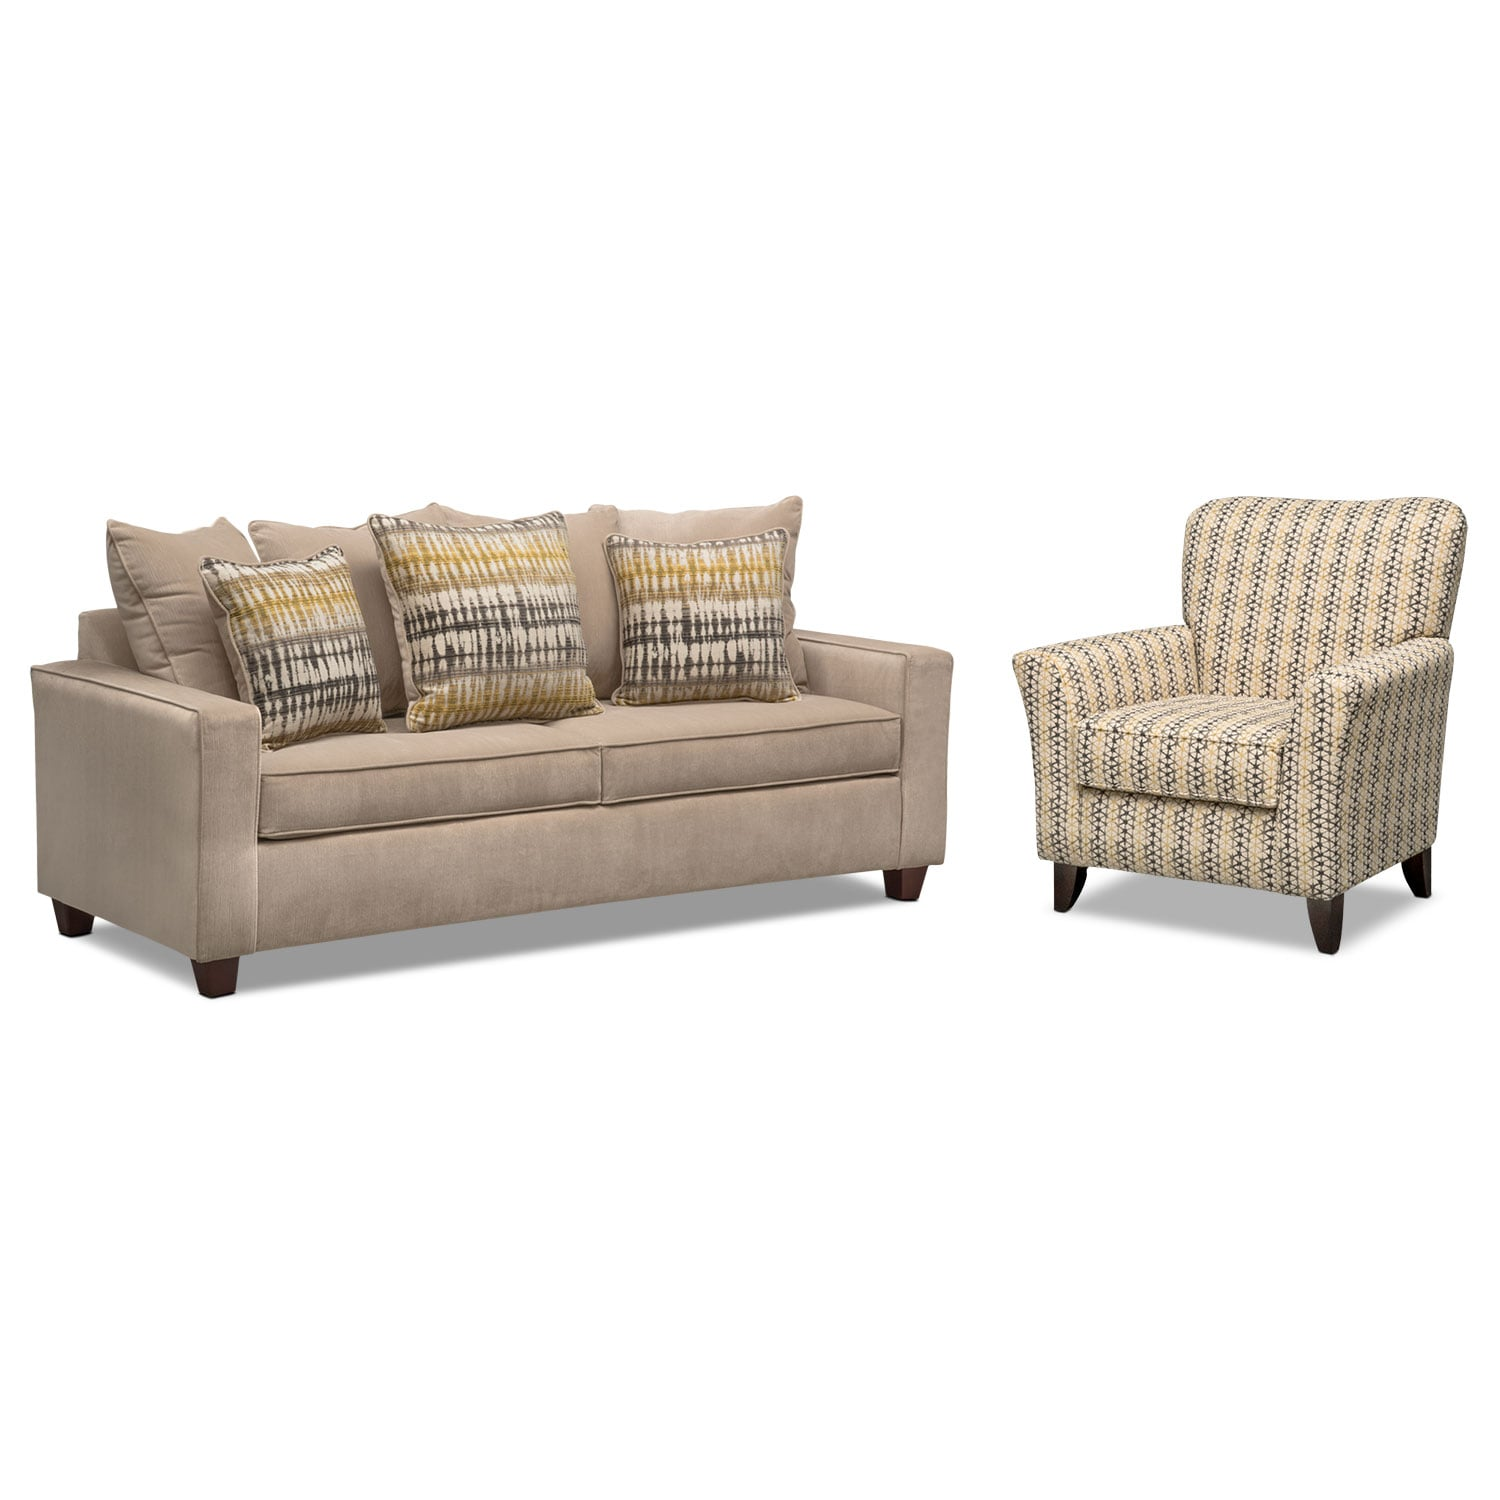 Living Room Furniture - Bryden Queen Memory Foam Sleeper Sofa and Accent Chair Set - Beige